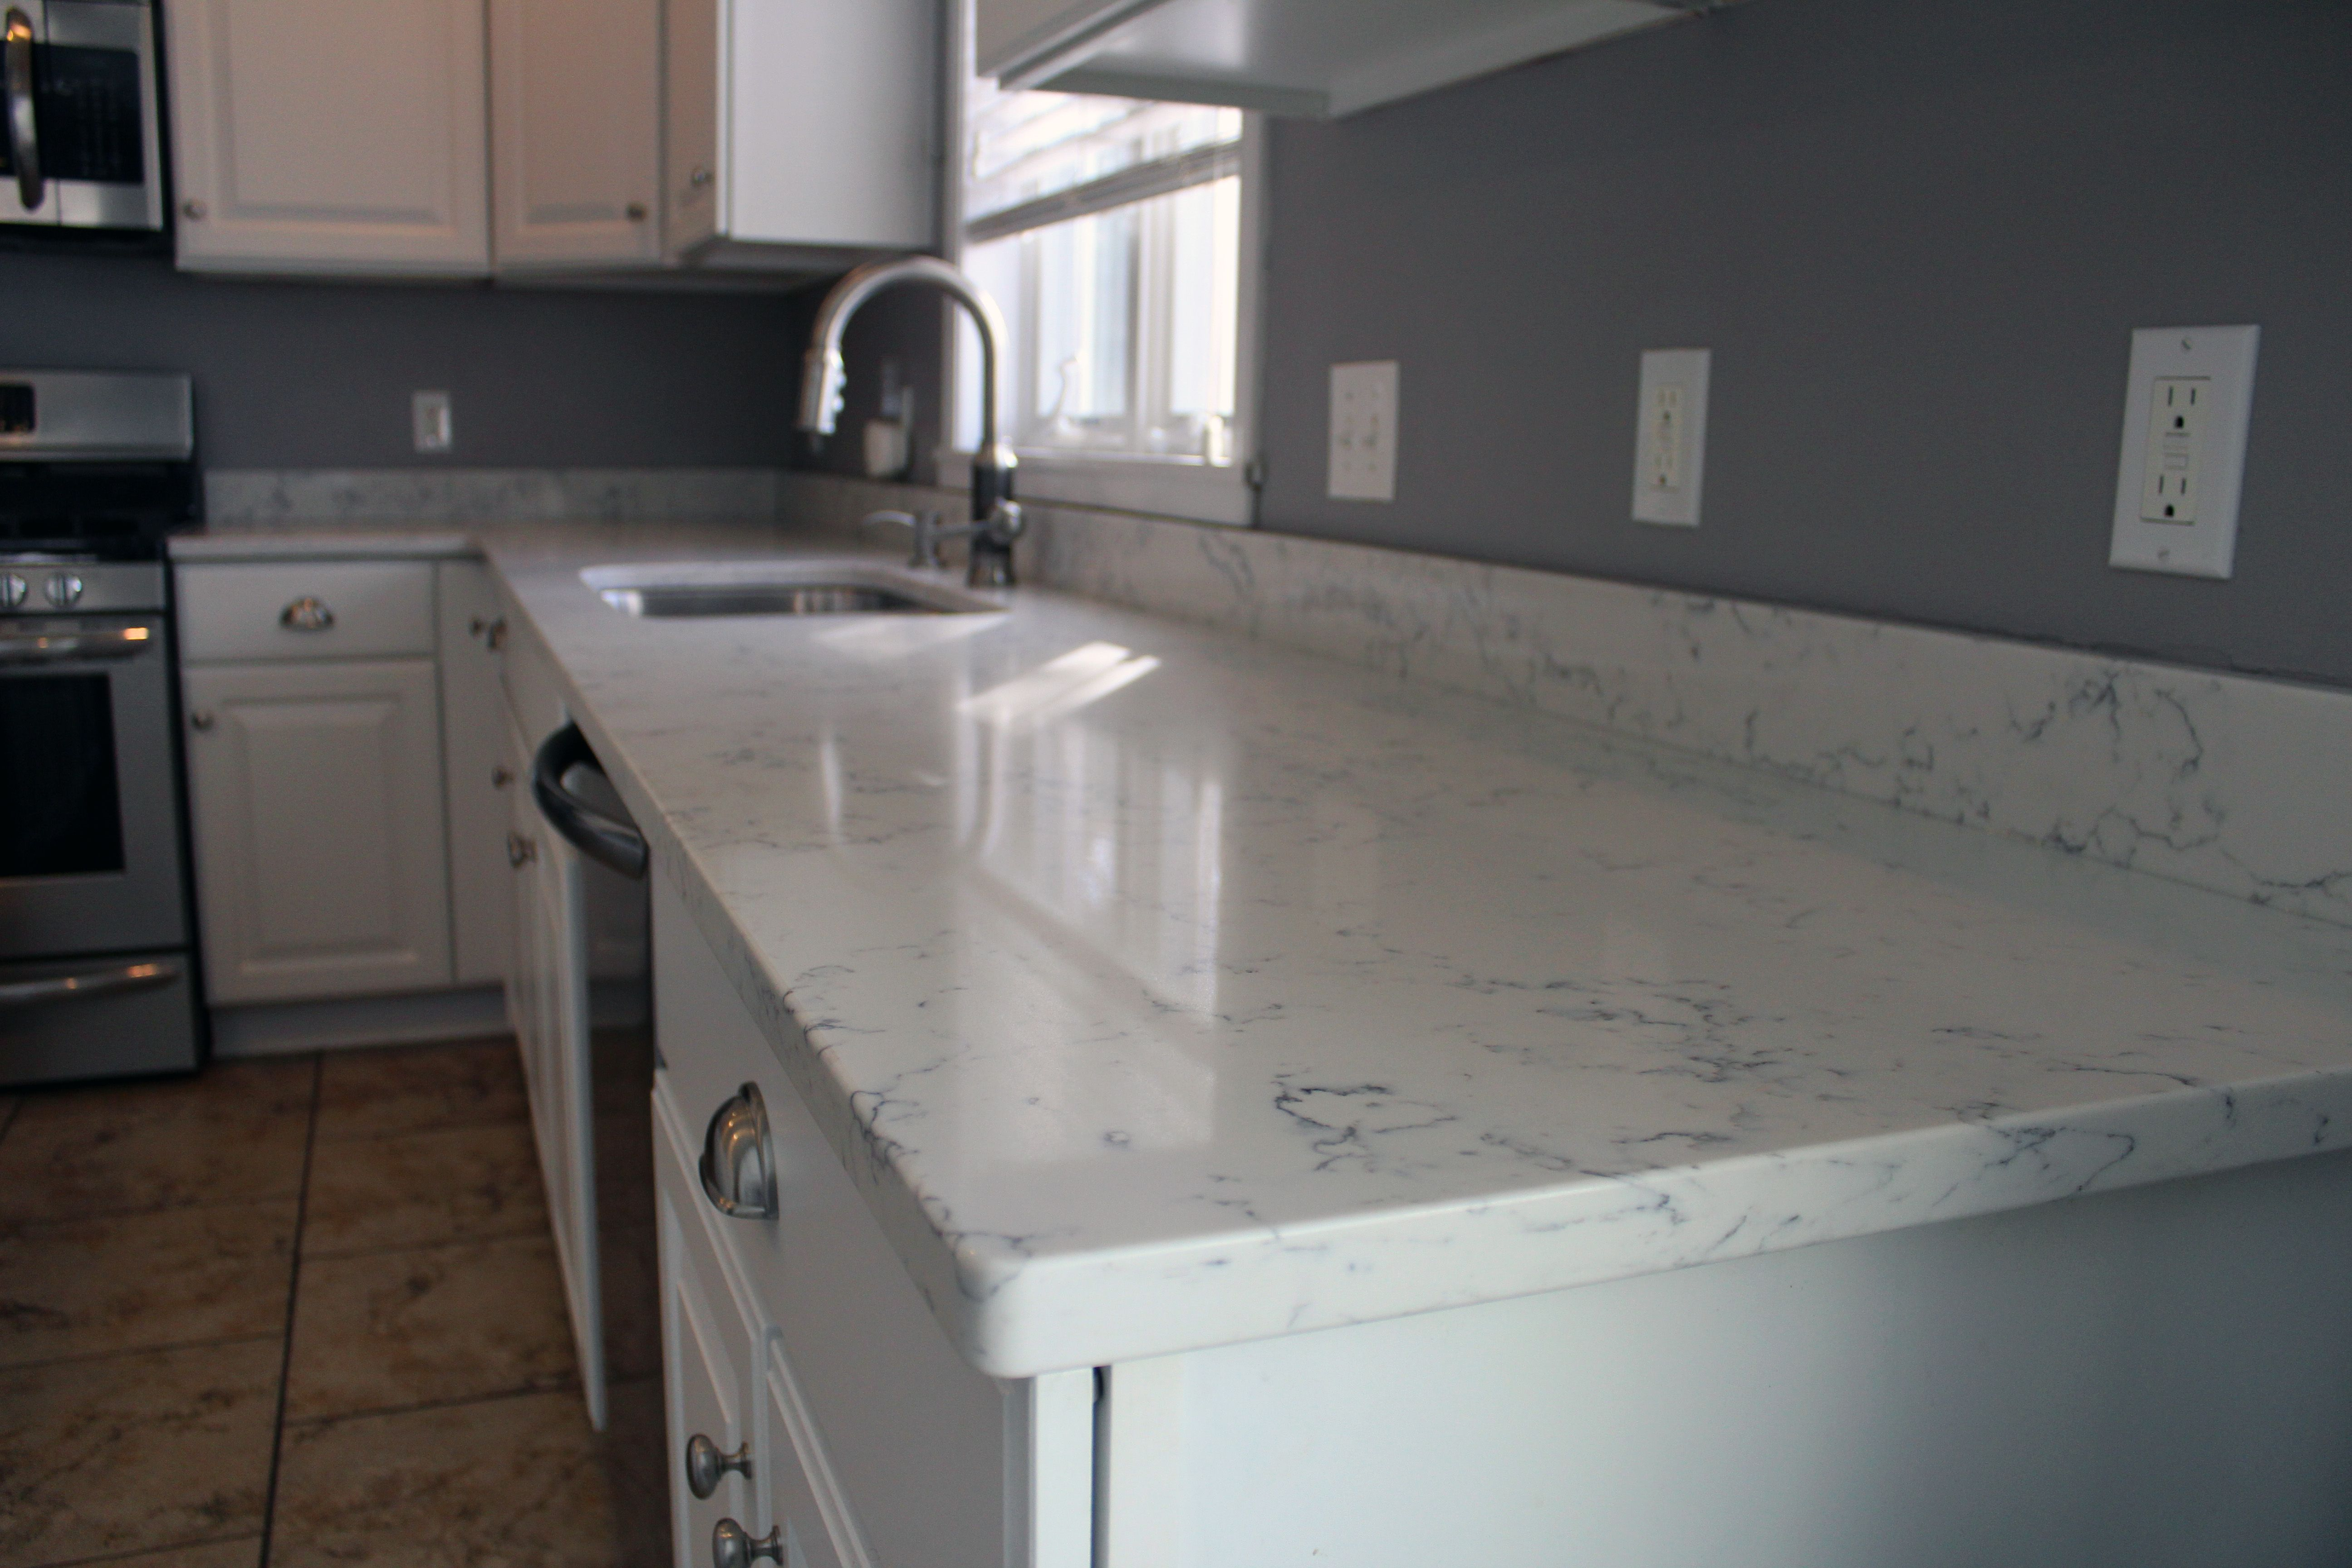 Carrara White Quartz By Aggranite; 502A Sink By Midwest/Aggranite.